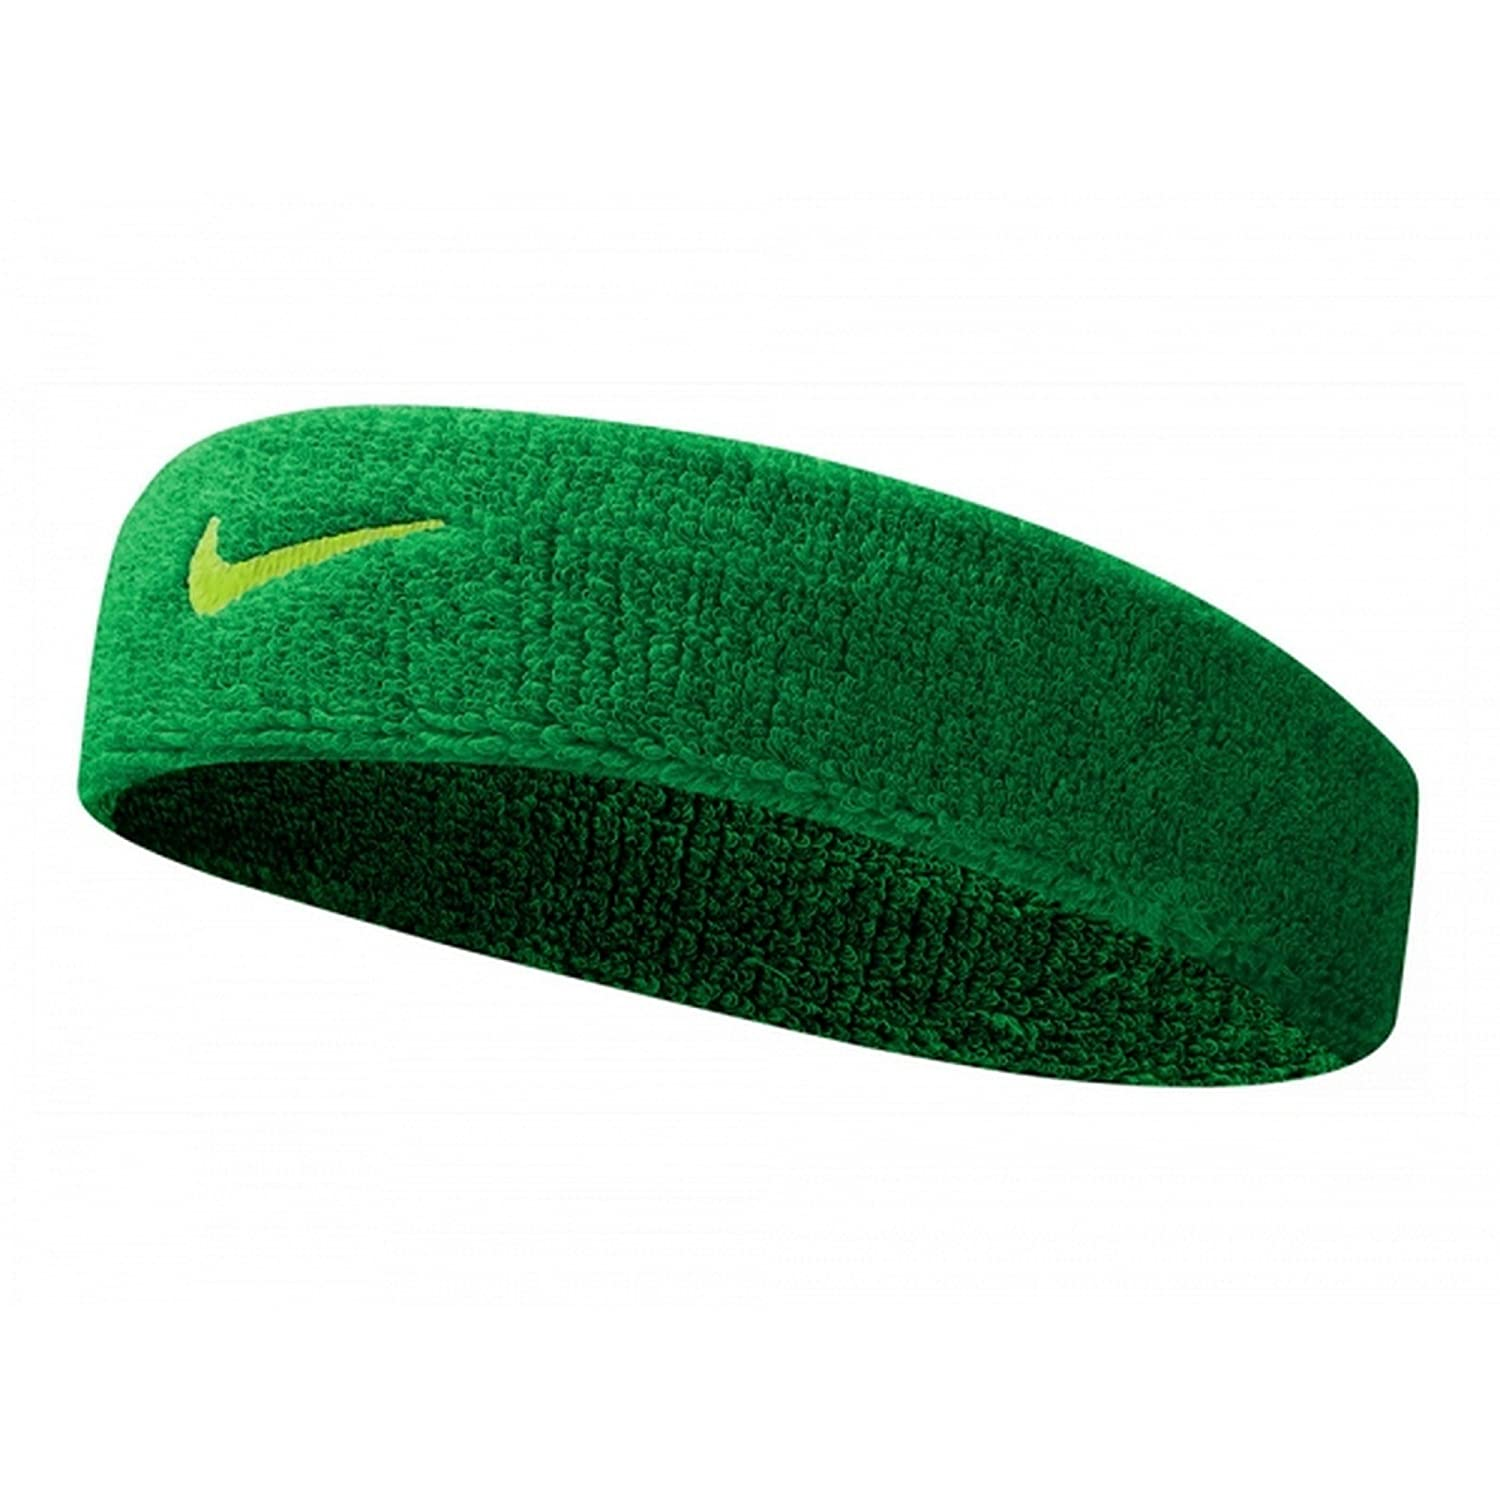 Buy NIKE SWOOSH HEADBAND-010 Online at Low Prices in India - Amazon.in 52f28843ff8